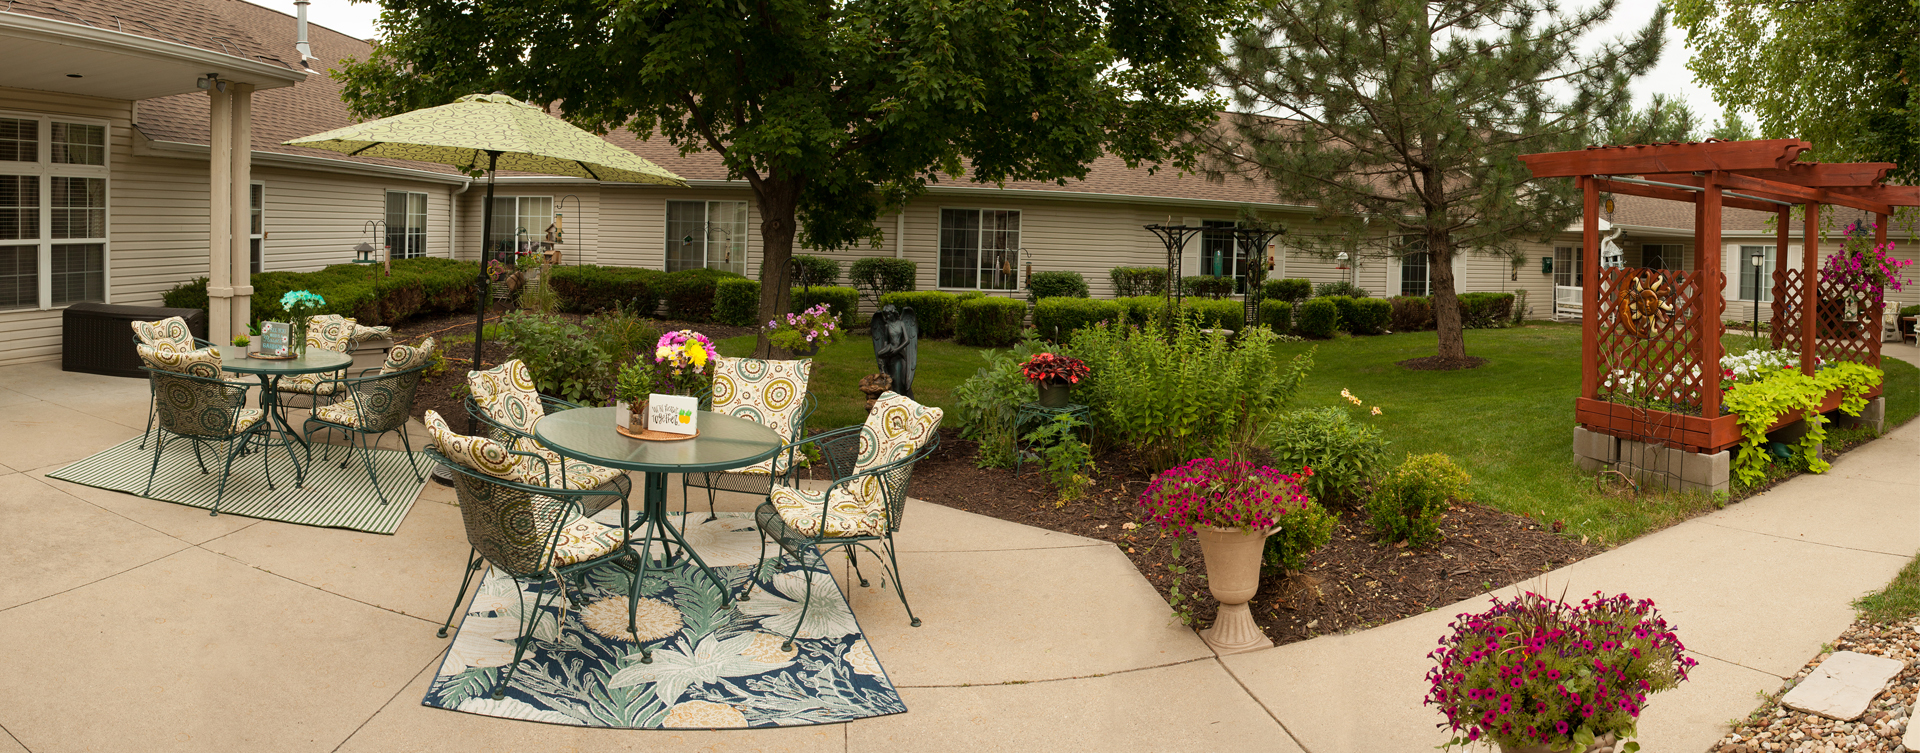 Enjoy the outdoors in a whole new light by stepping into our secure courtyard at Bickford of Cedar Falls